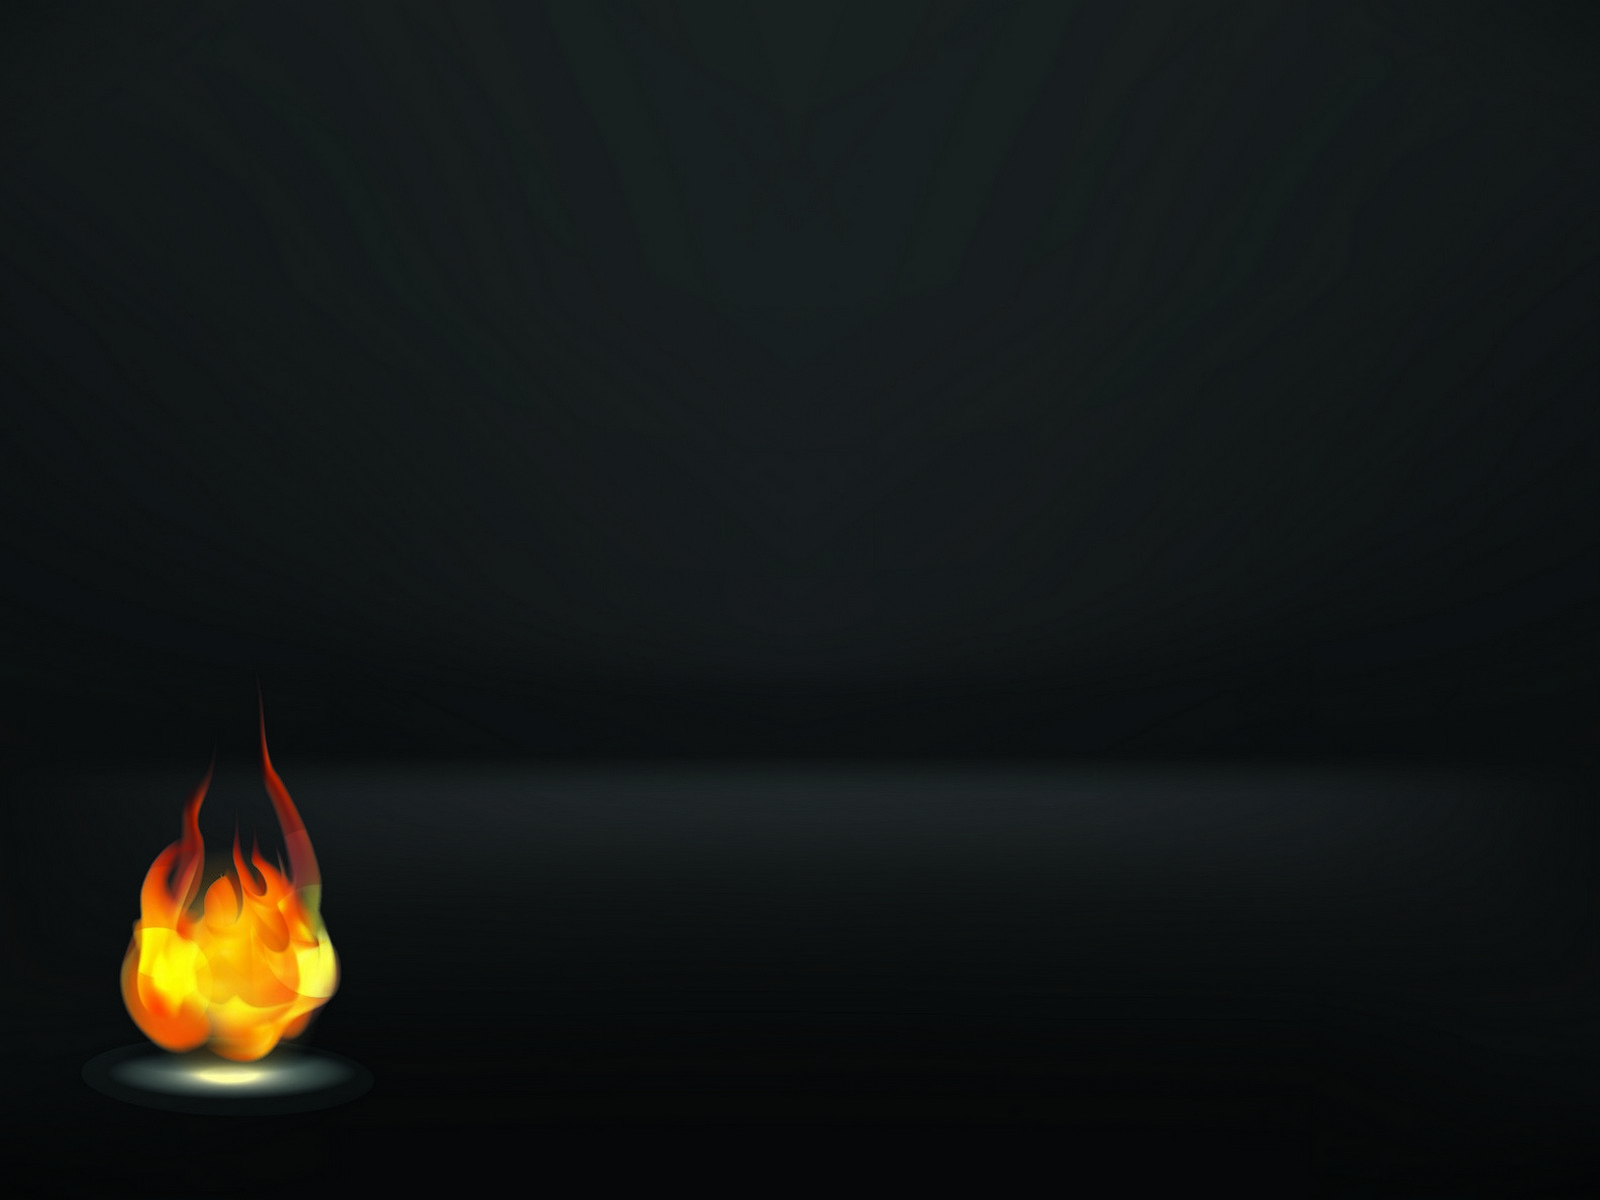 A Fire Flame Background PPT Backgrounds